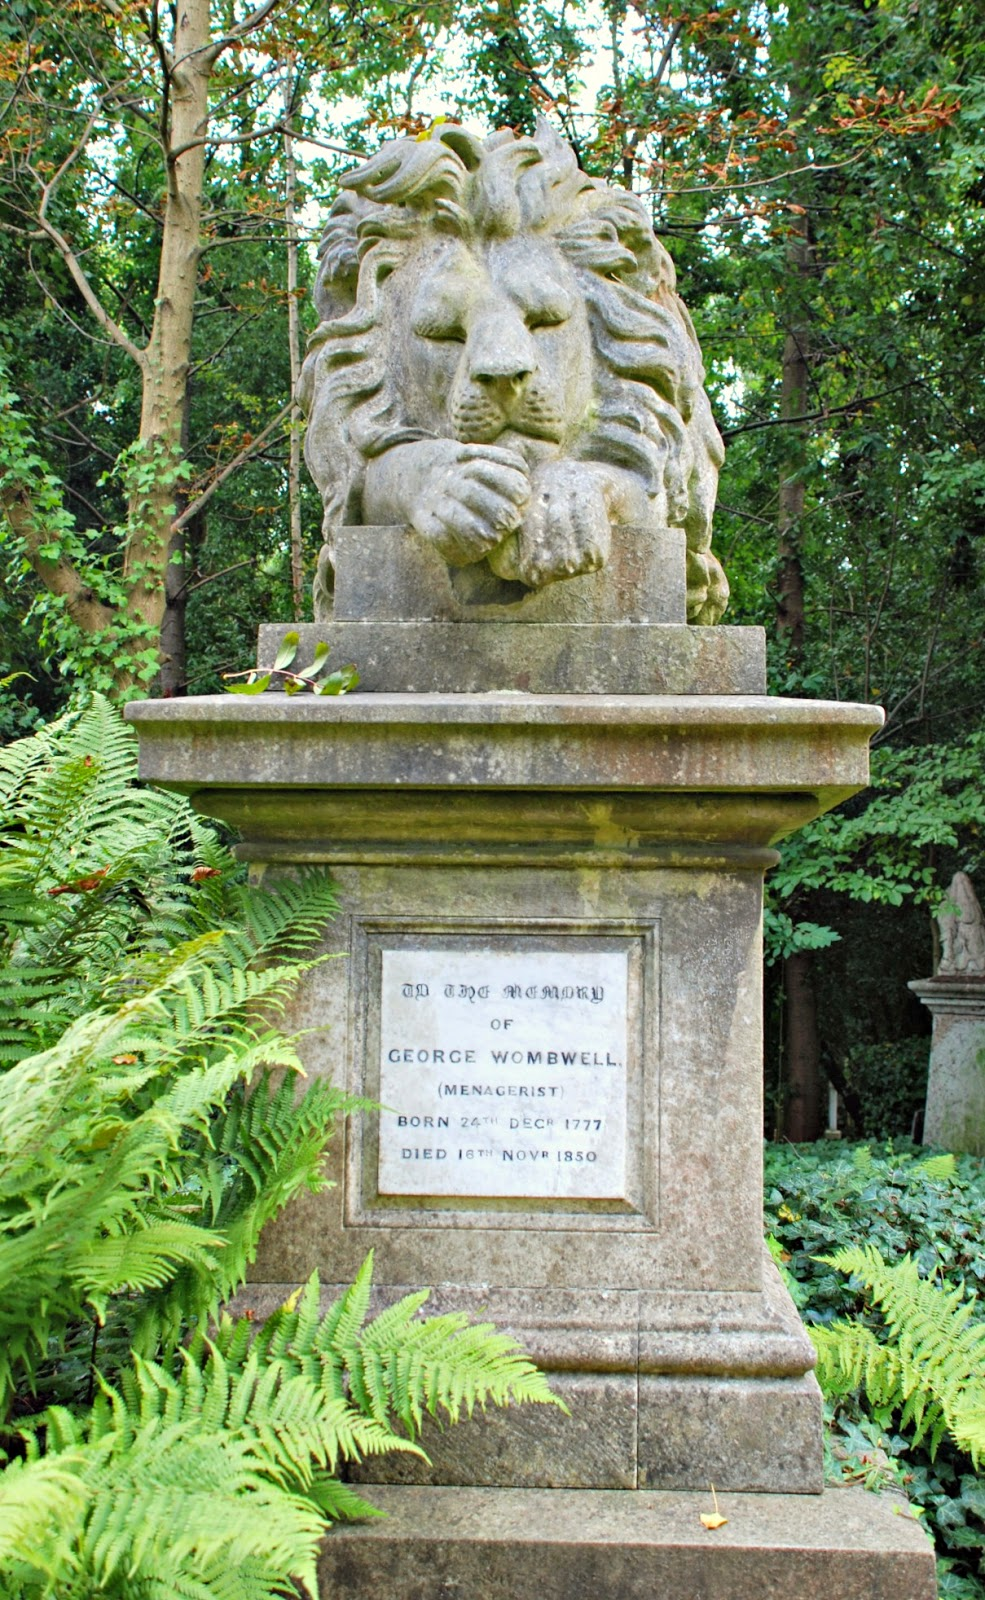 George Wombwells' memorial, Highgate Cemetery, London